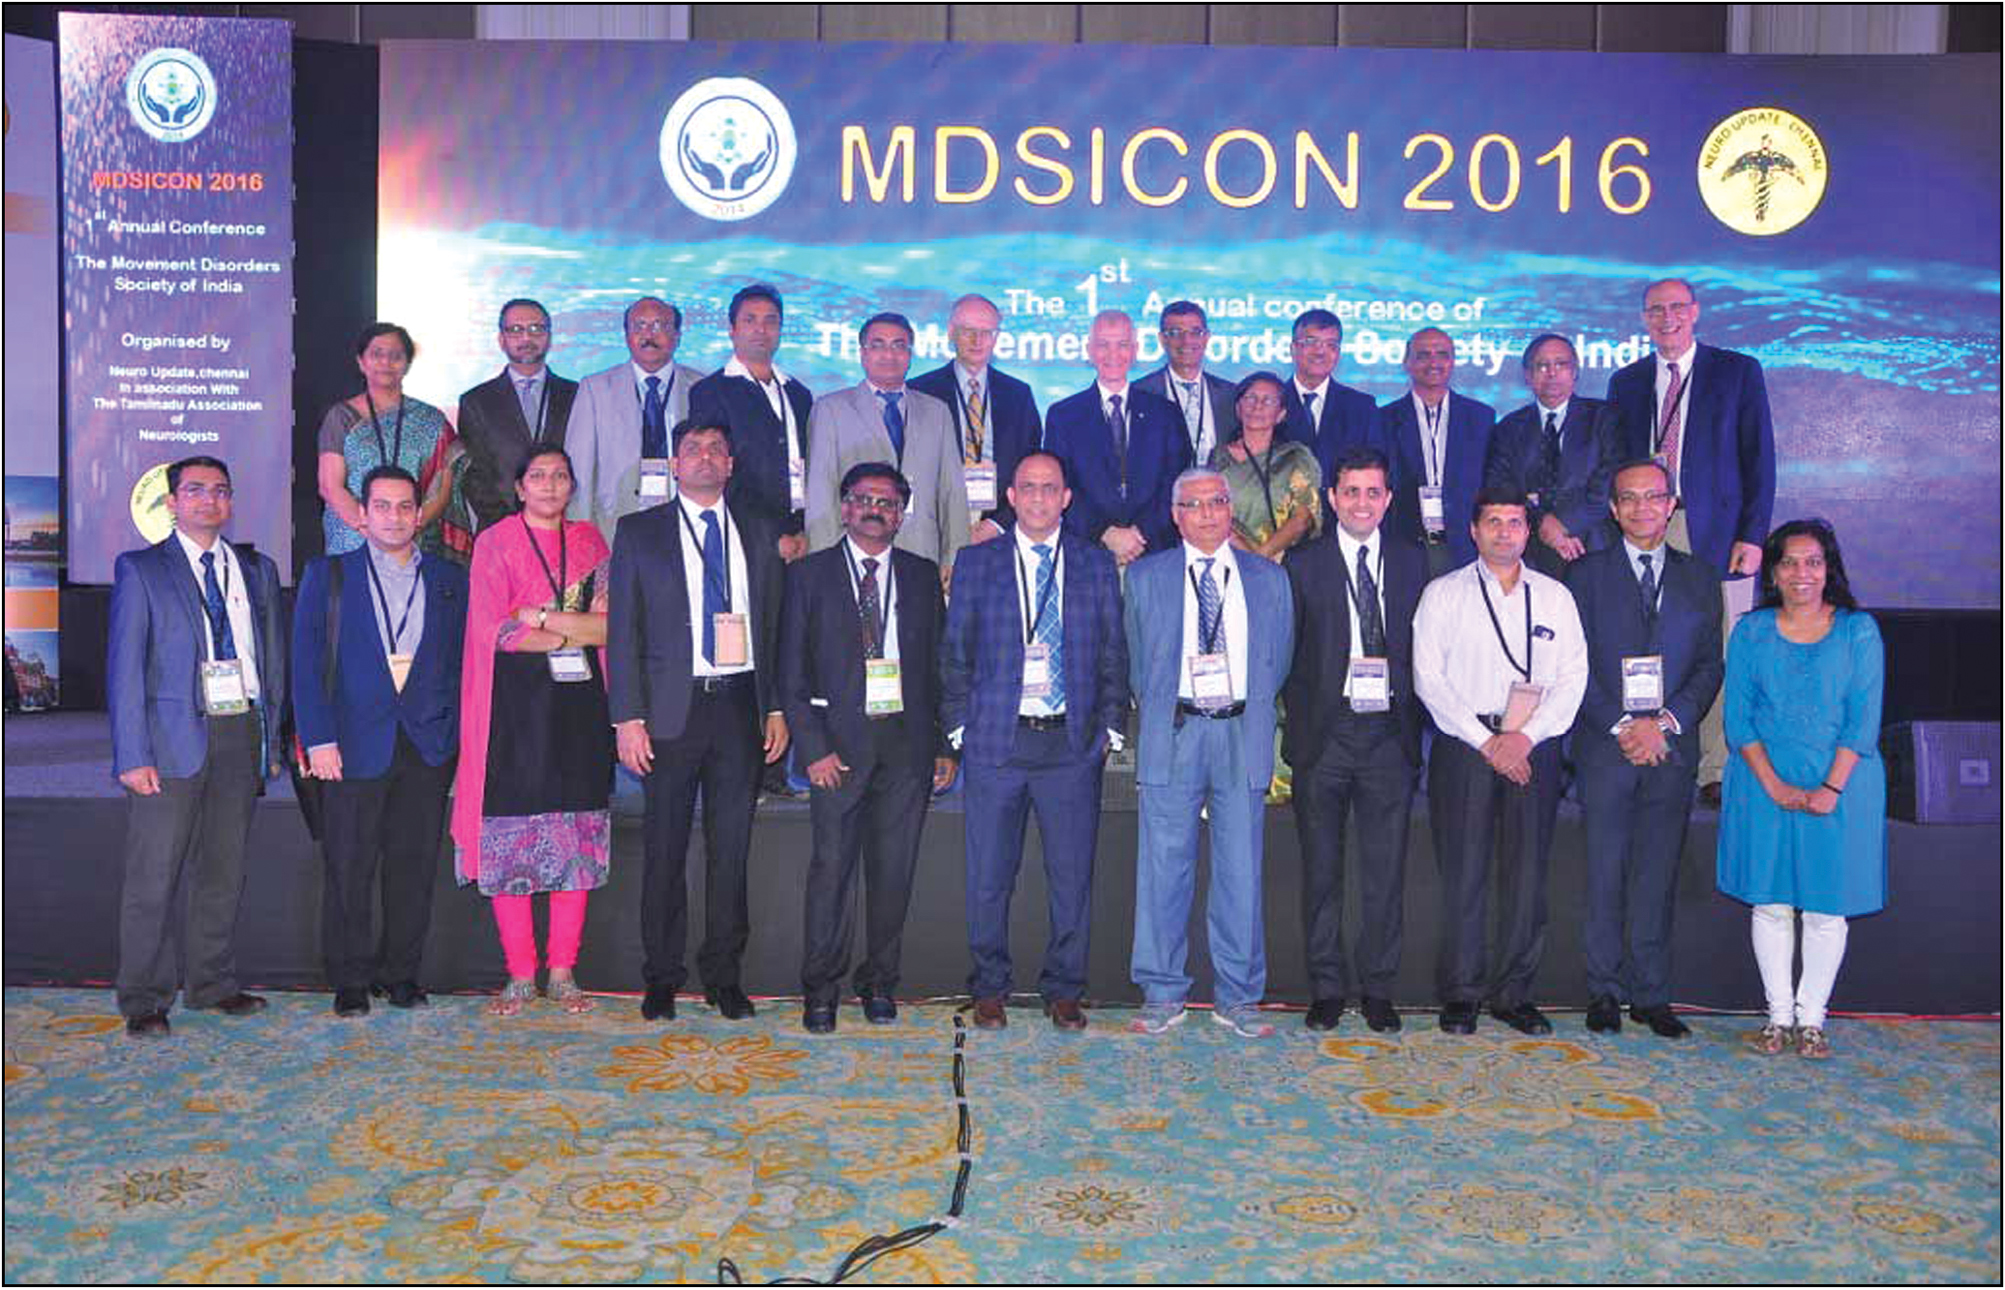 Figure 9: Faculty at the first MDSICON 2016